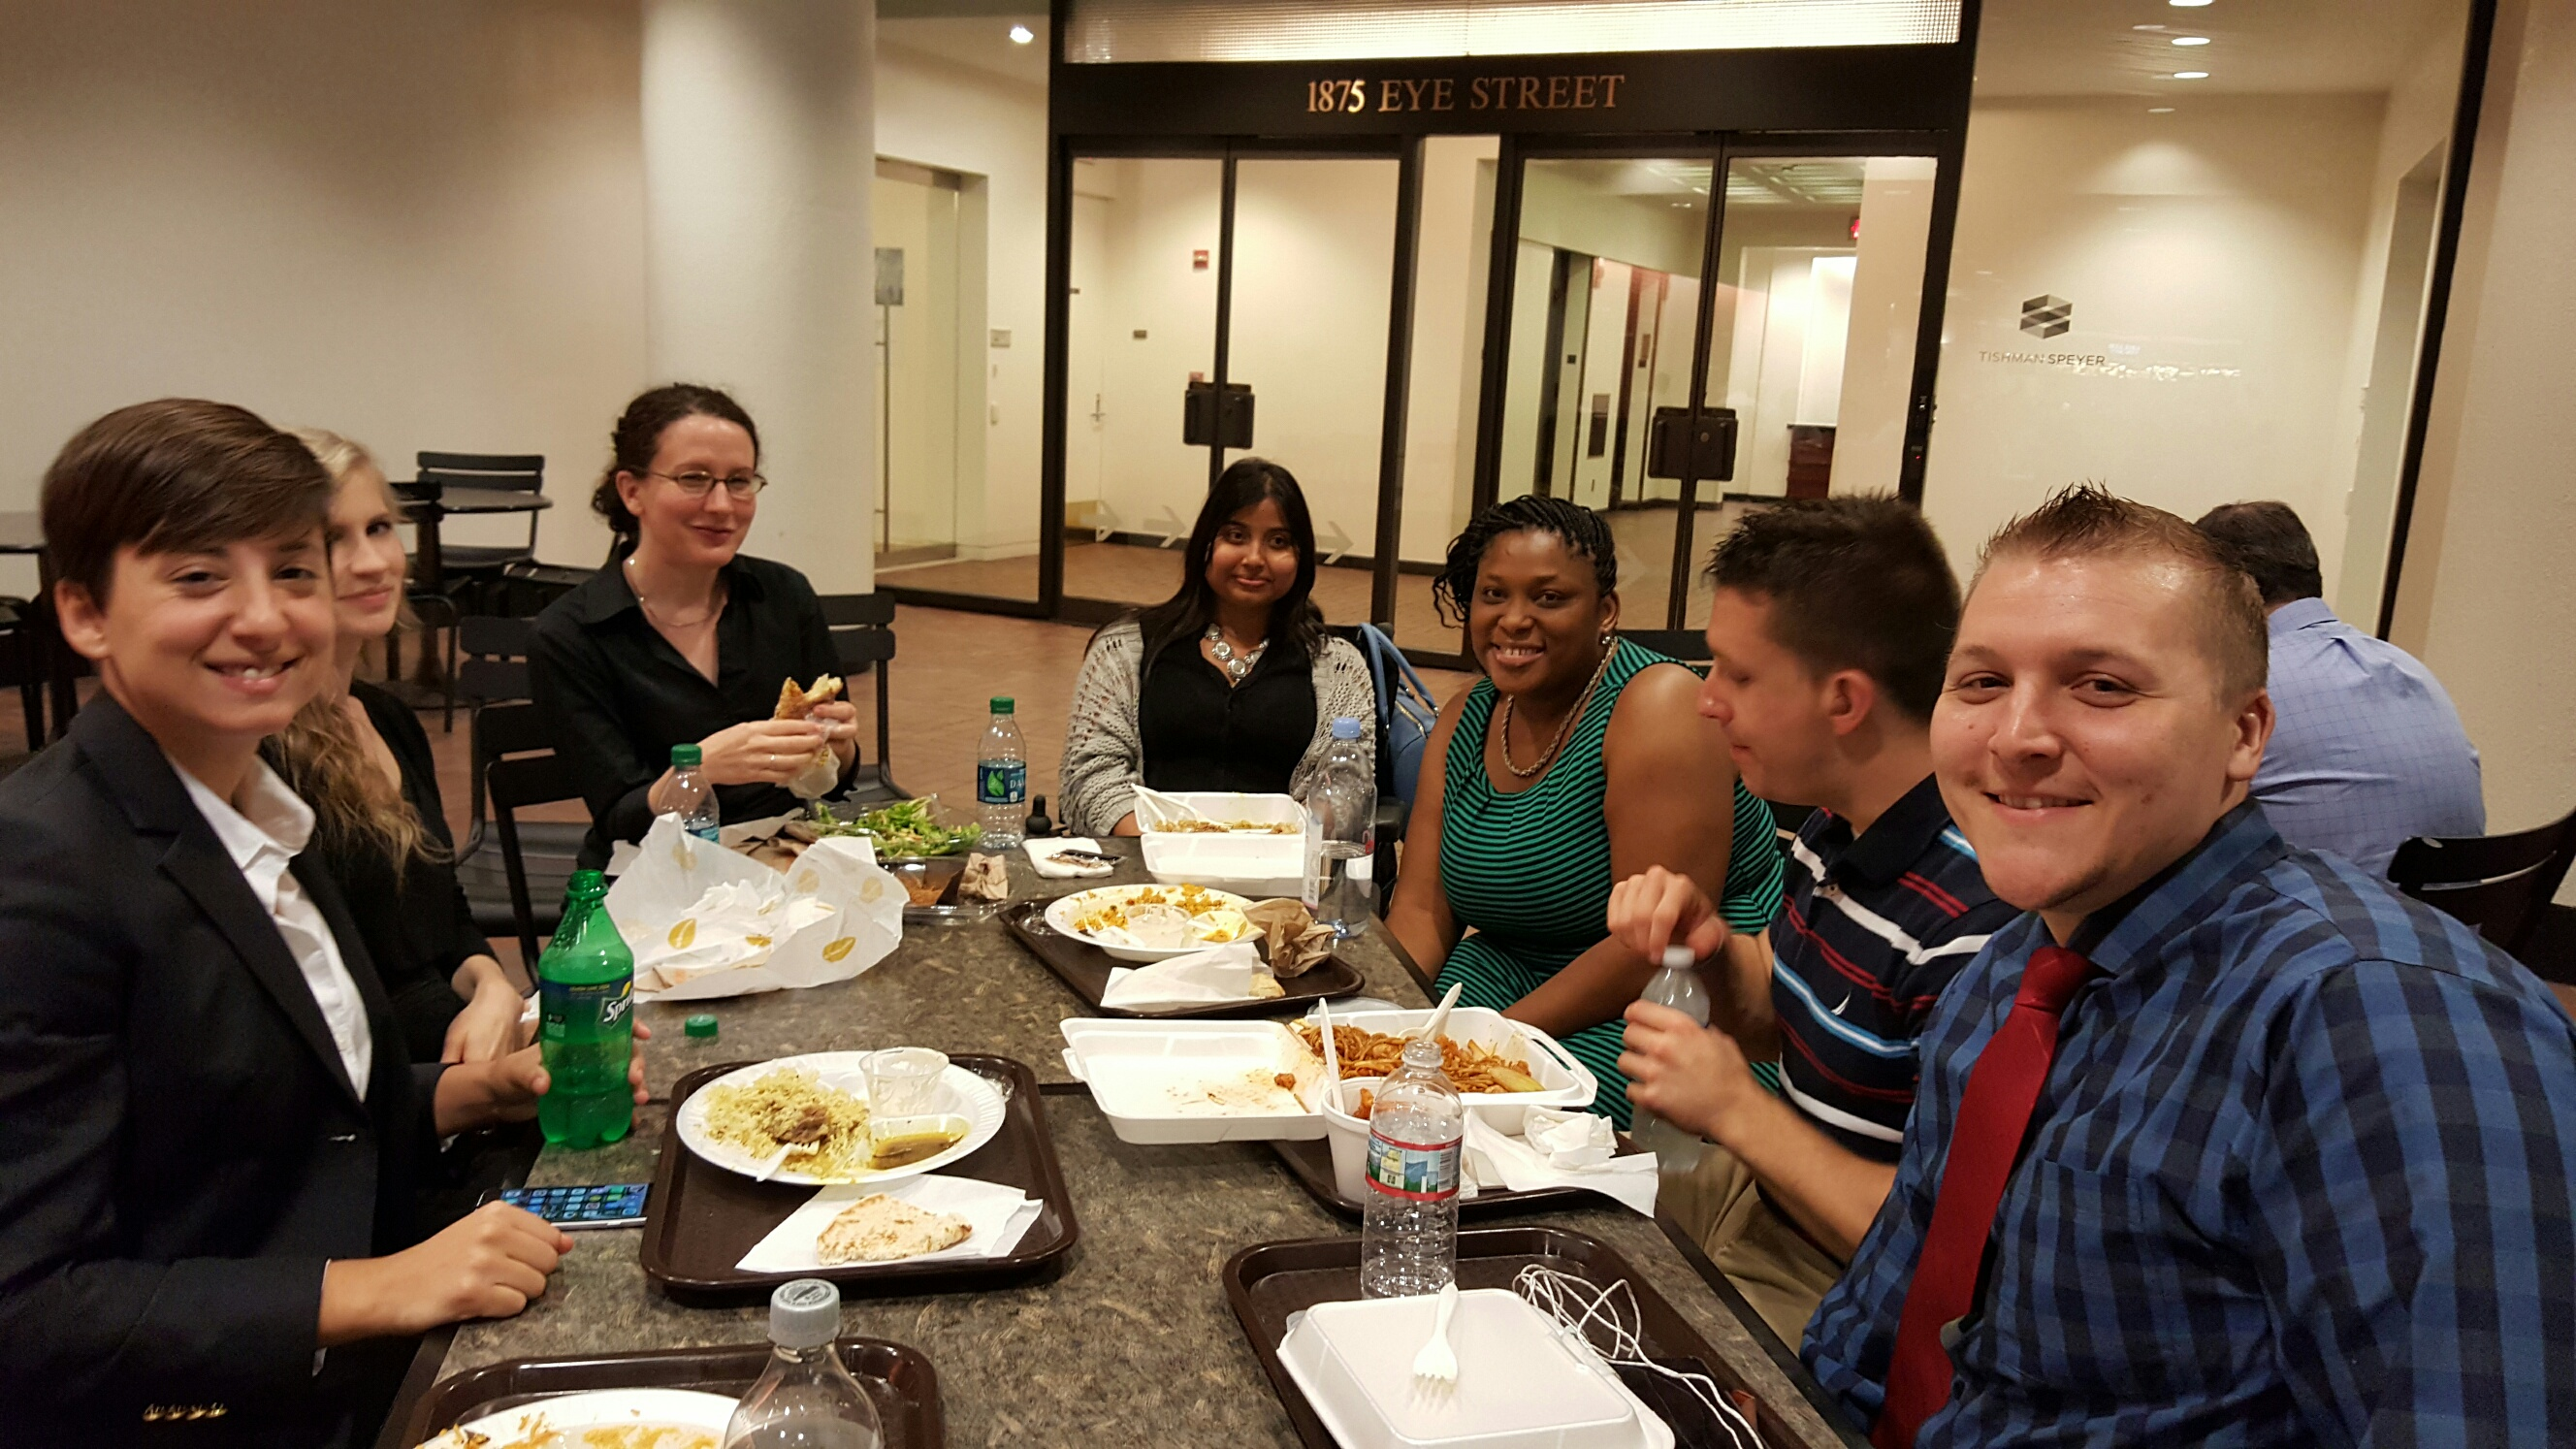 A group of USICD program interns, with sign language interpreters, eat lunch at a cafeteria during training and orientation week